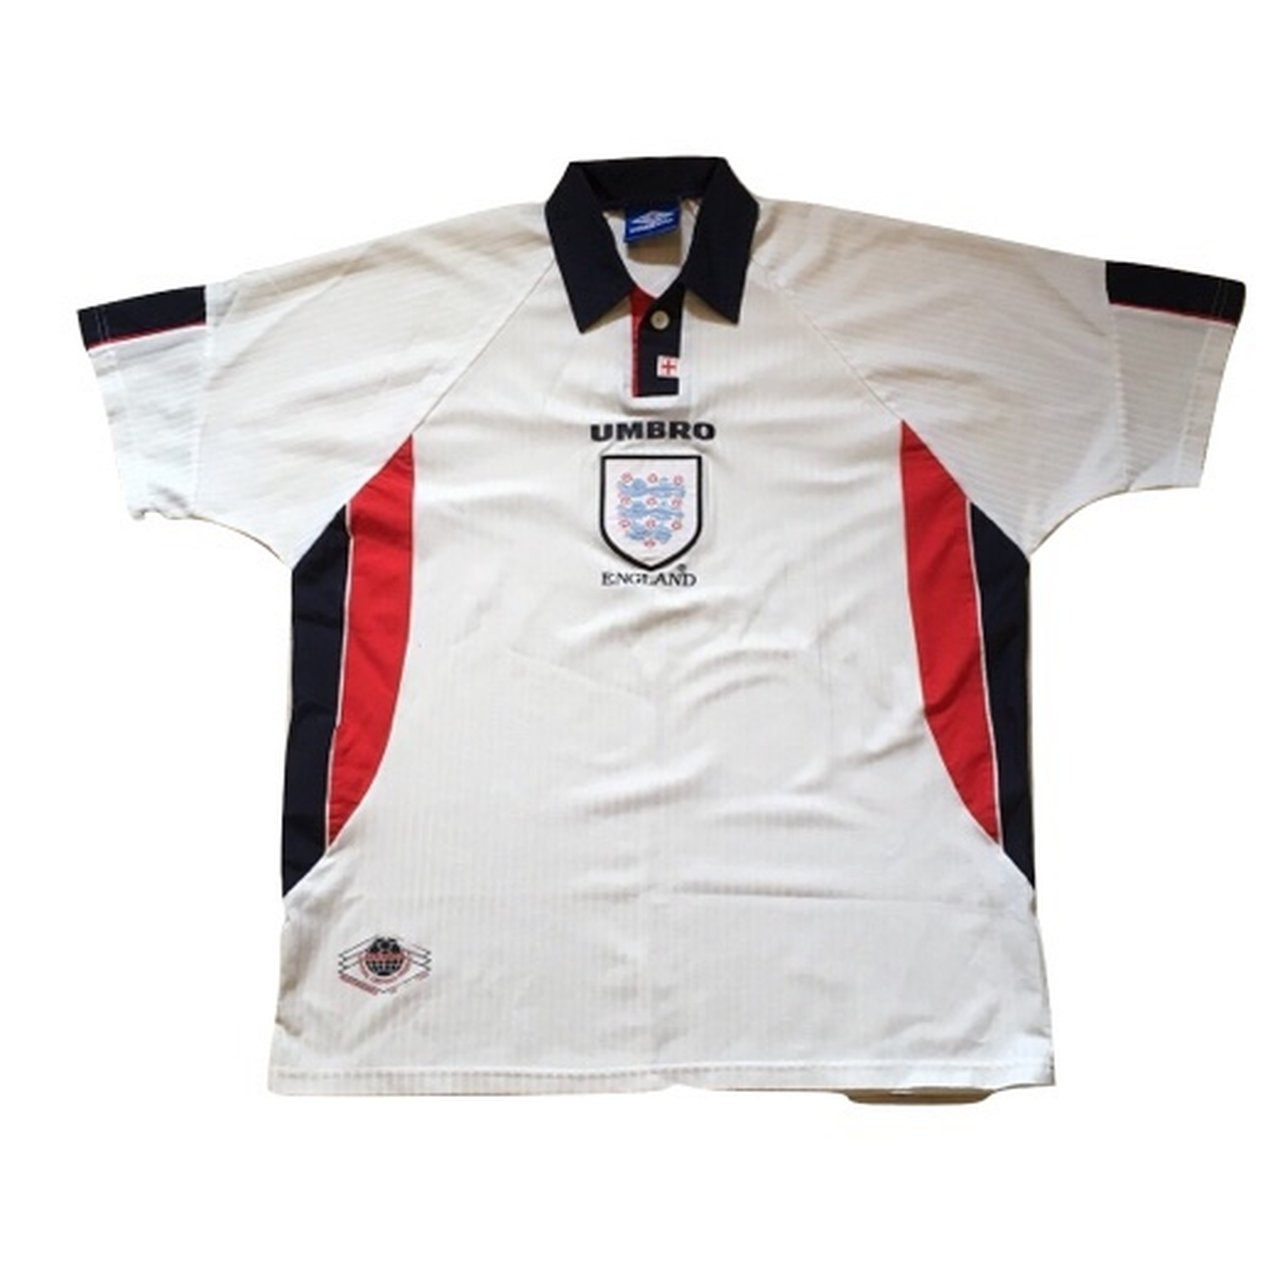 a7e491f3031 Vintage England Rugby Shirt | Top Mode Depot